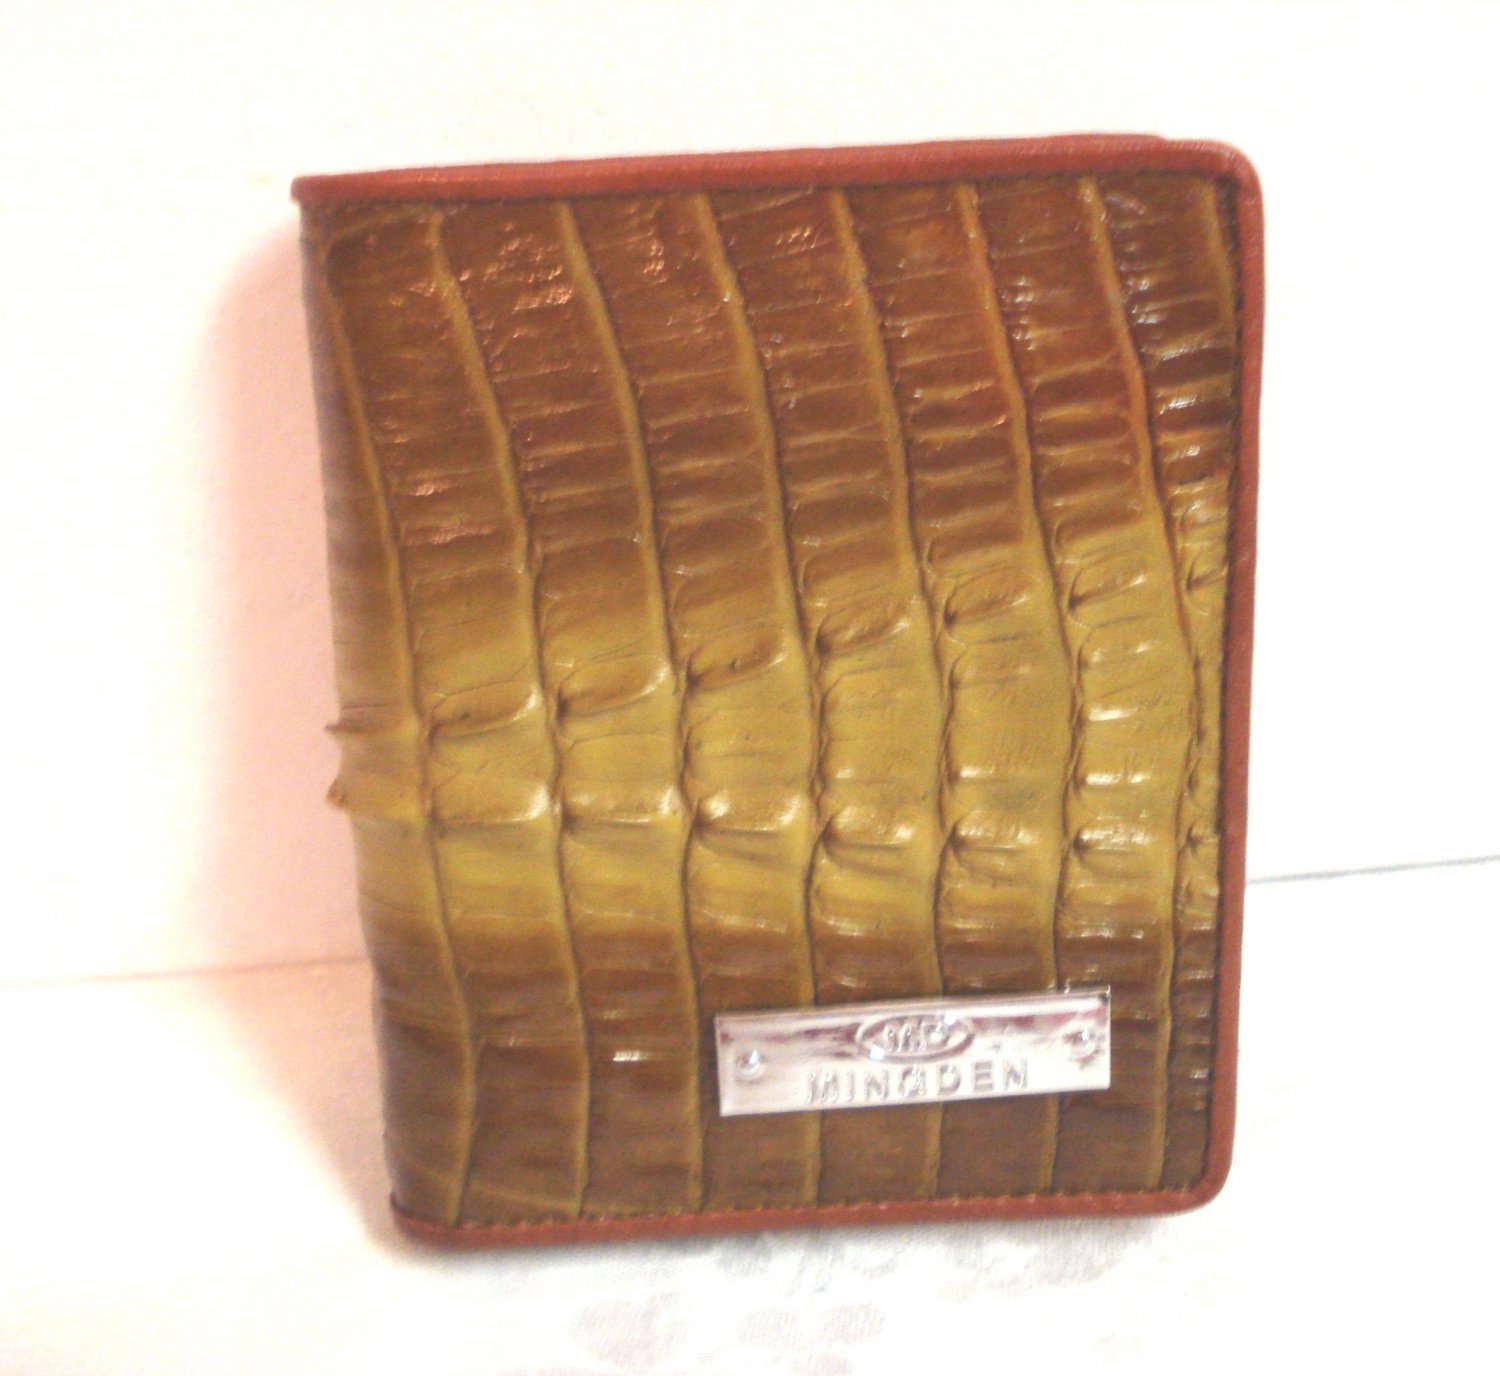 Alligator or crocodile leather wallet Mingden unused pre-owned ll3268